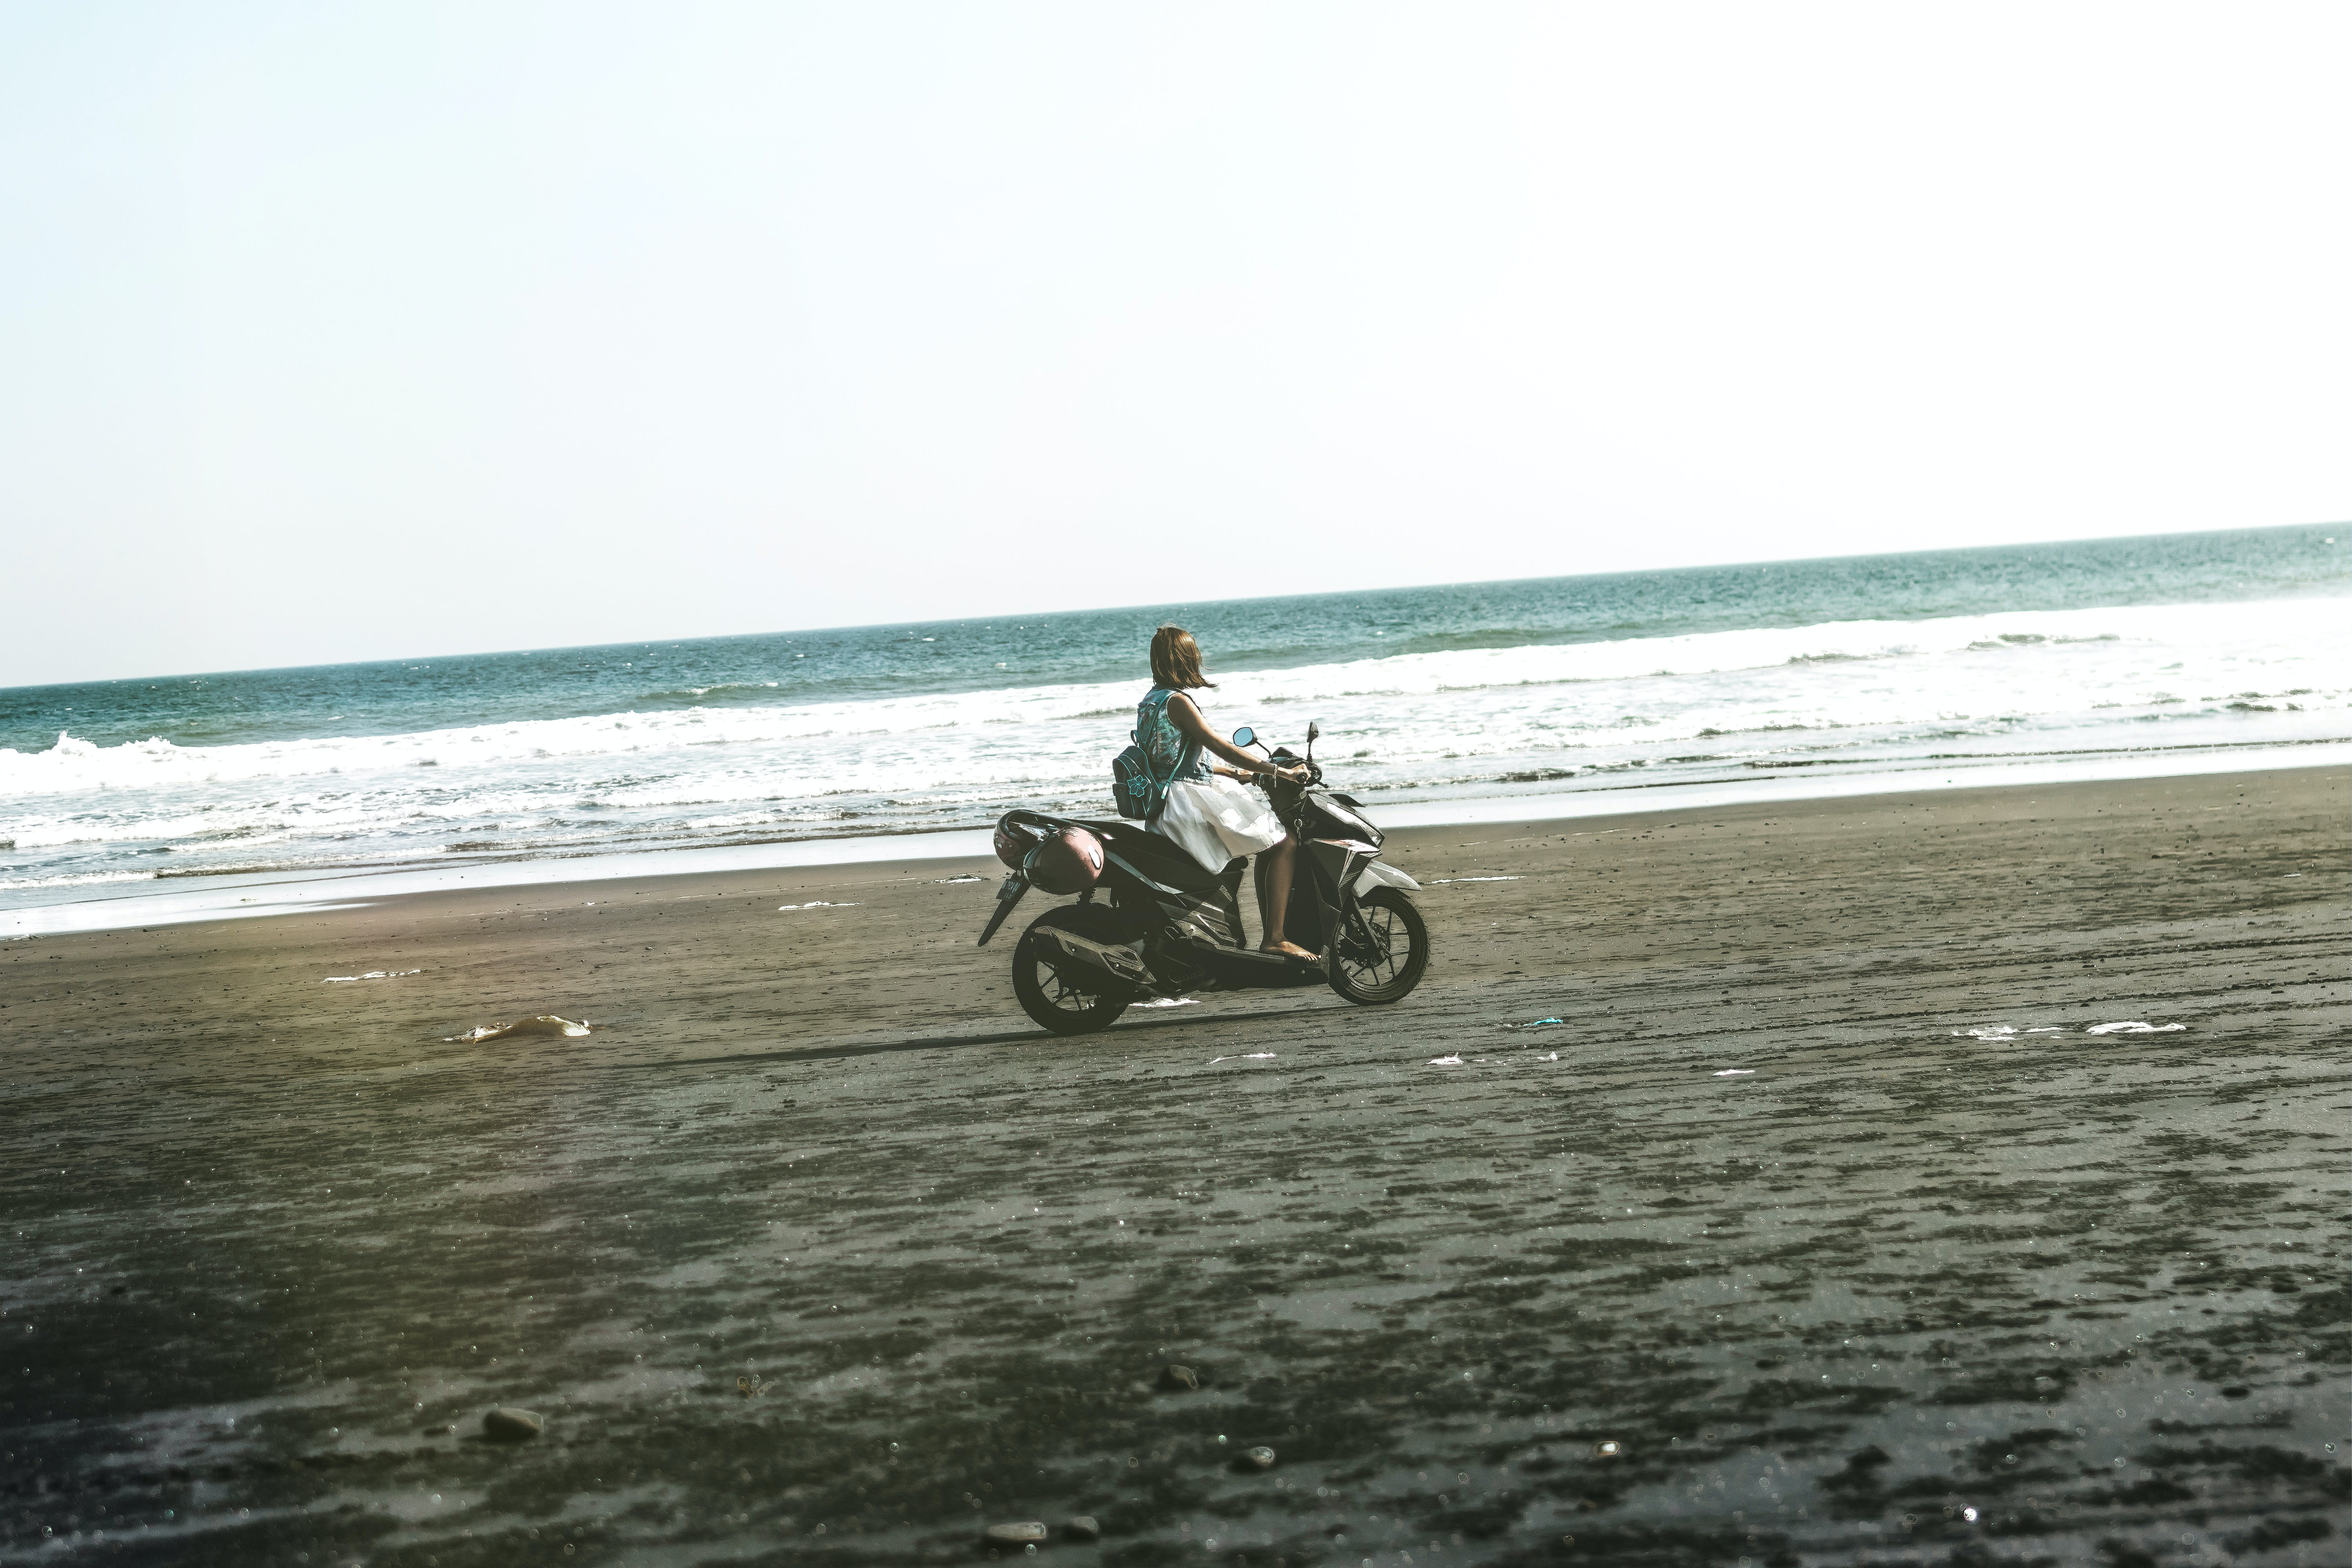 Woman Riding Black and Gray Motor Scooter on Beach